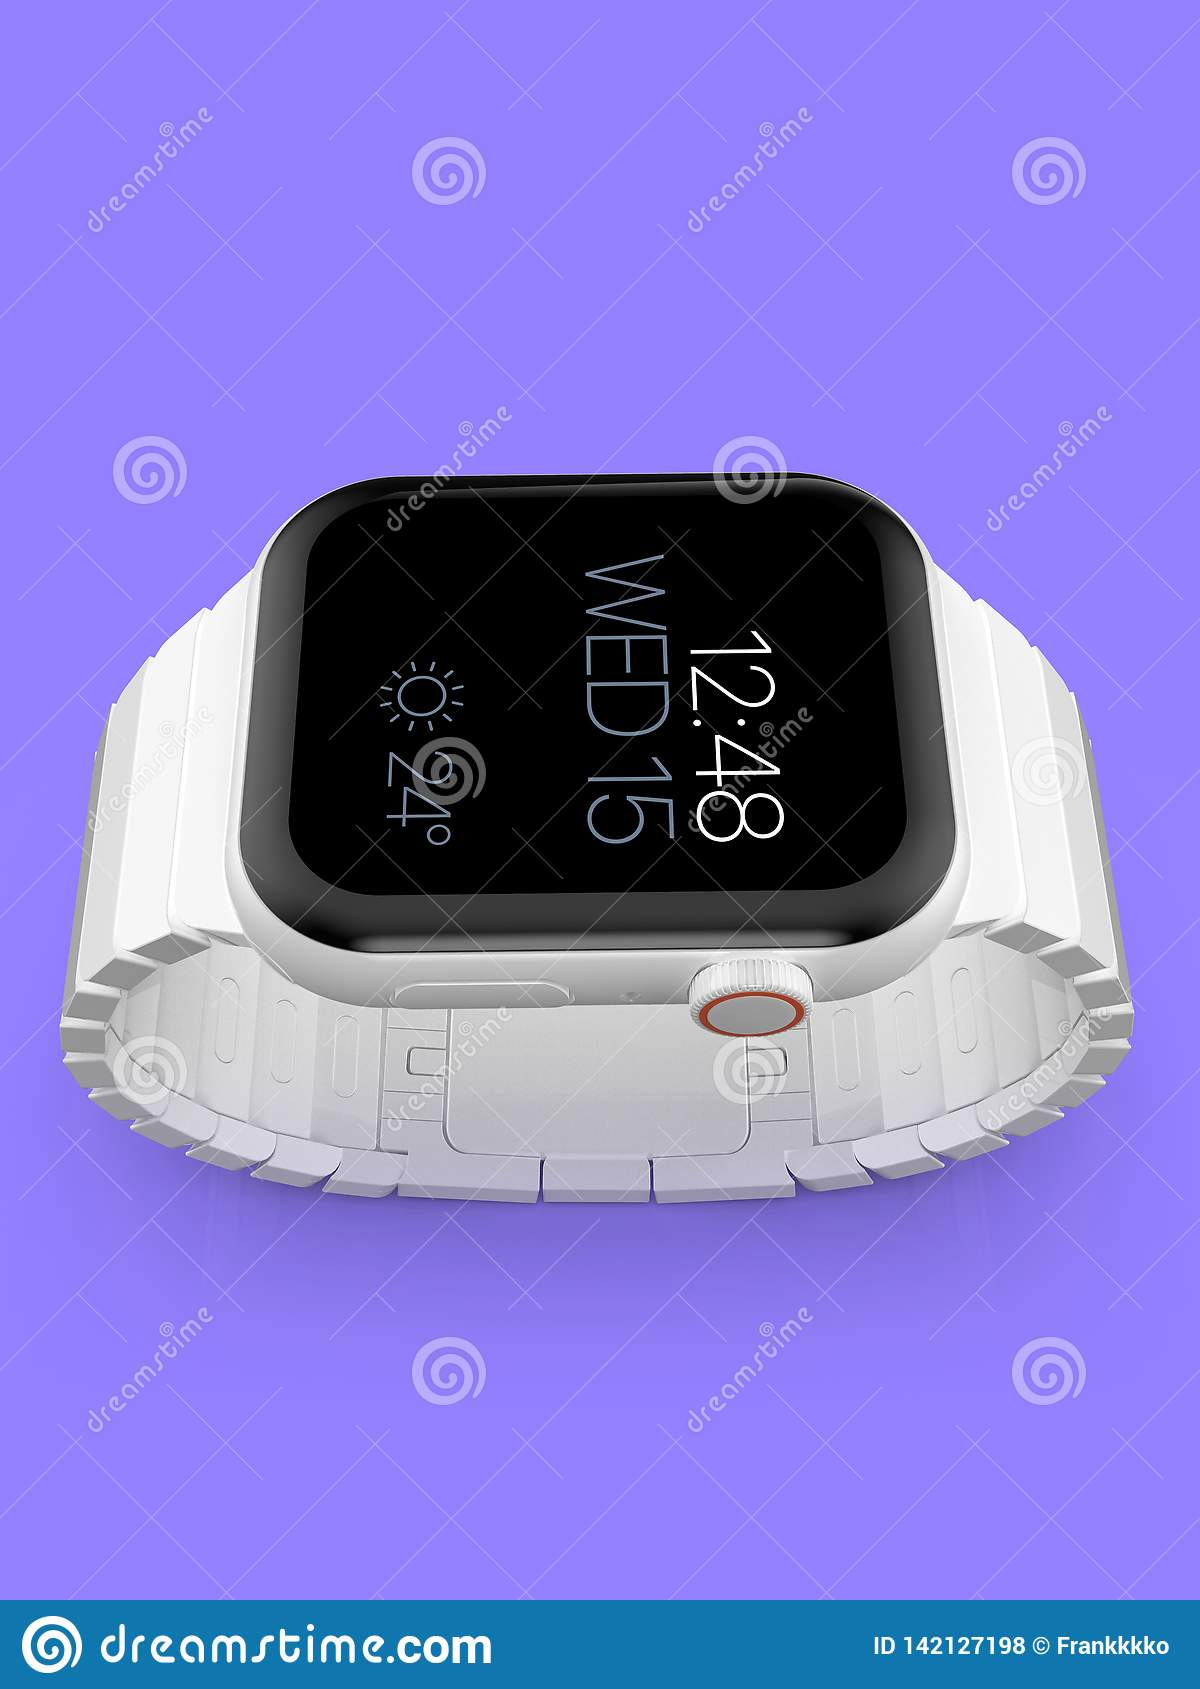 Apple Watch 4 white ceramic fictional rumor smartwatch, mockup